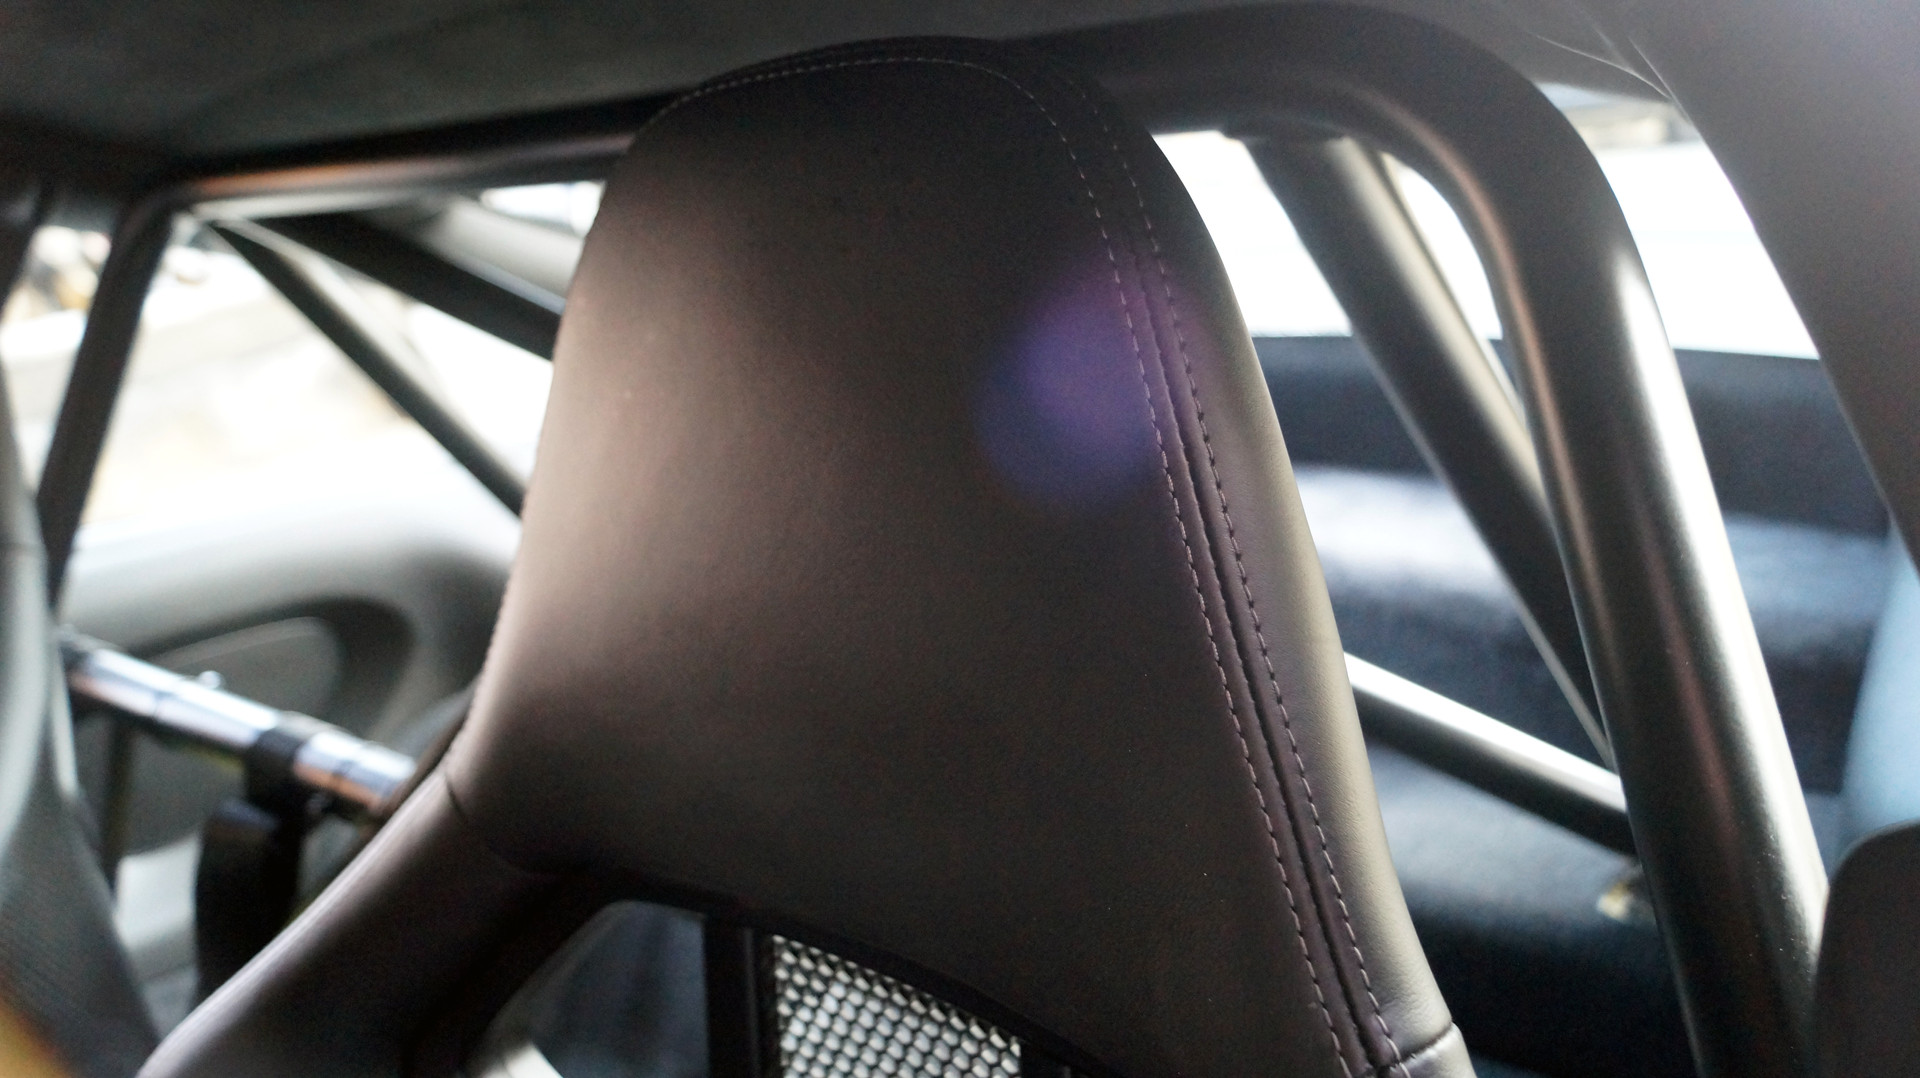 GT3 Headrest Detail